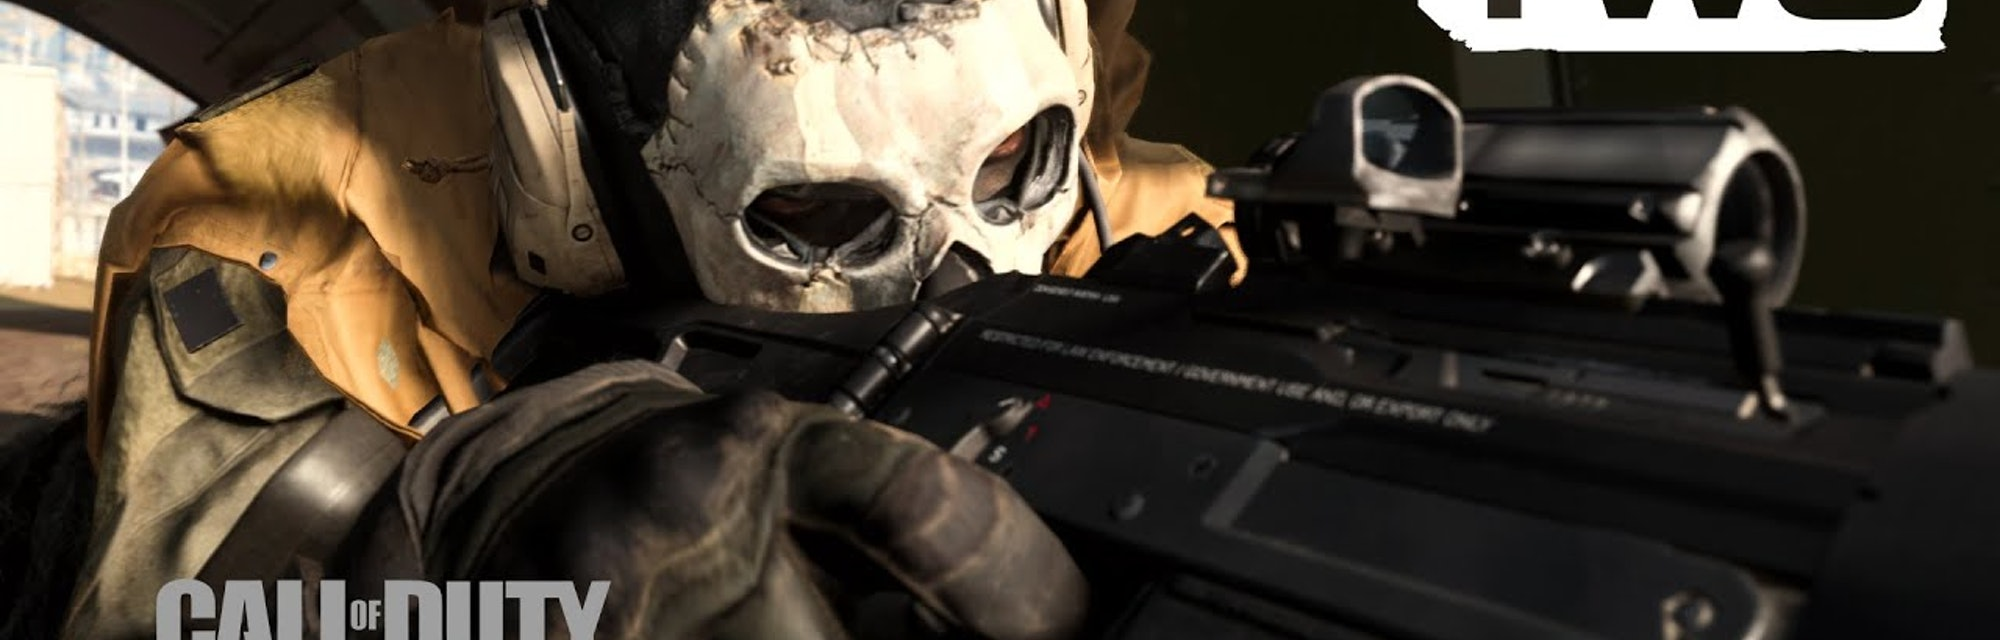 Call Of Duty Warzone Gameplay Leak Confirms Release Date Is Imminent